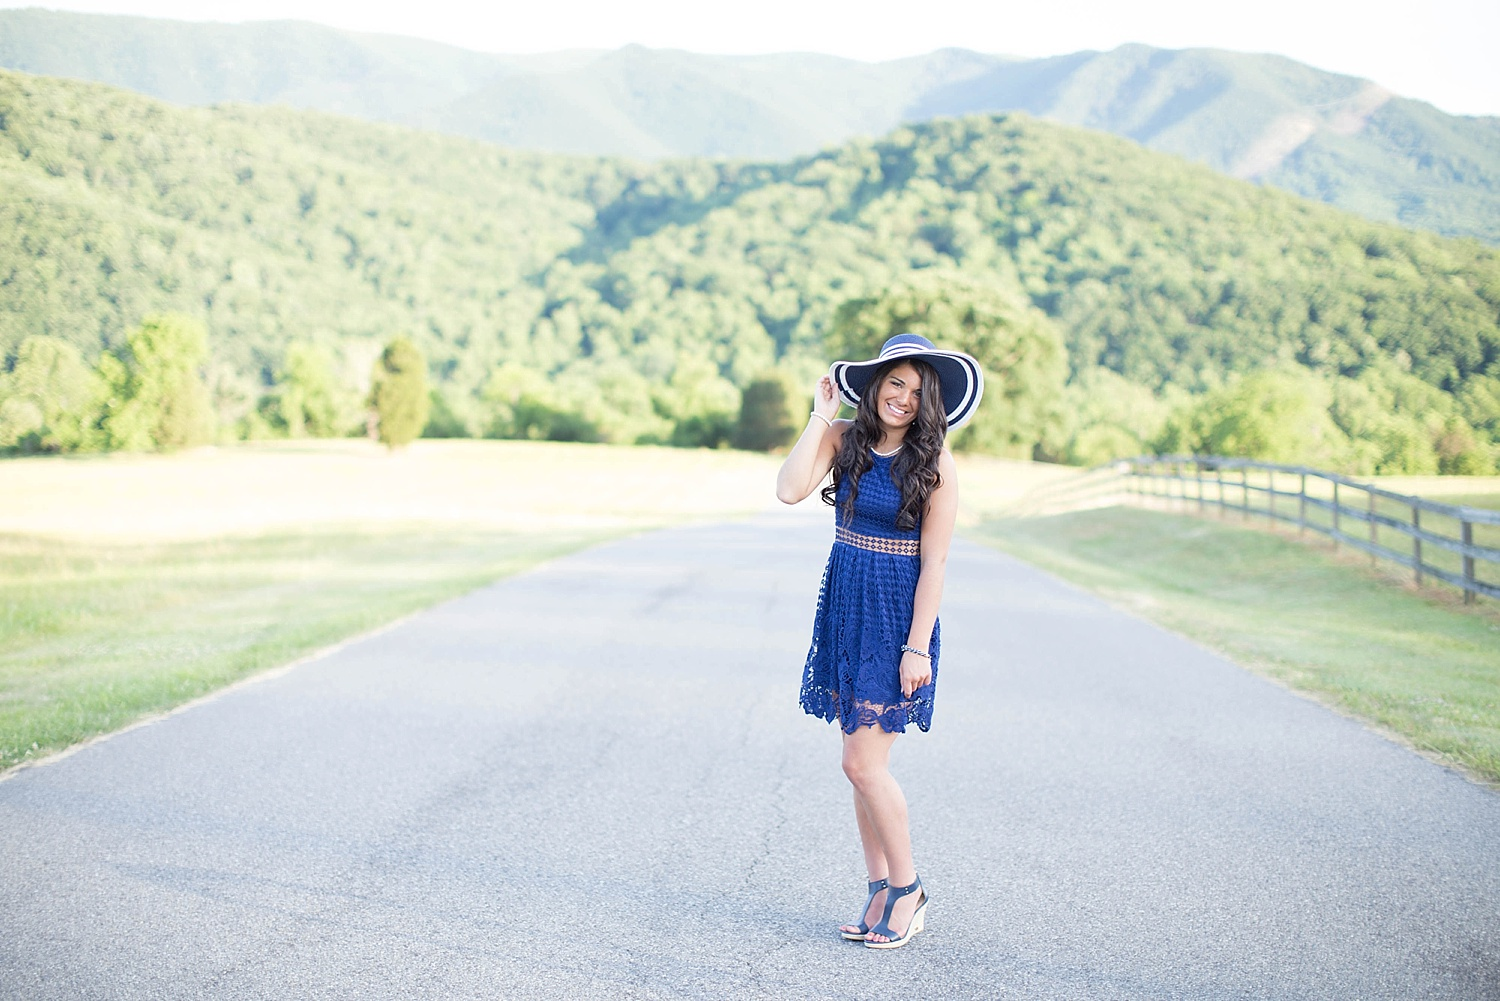 Senior Session | Ashley Powell Photography | Roanoke, VA